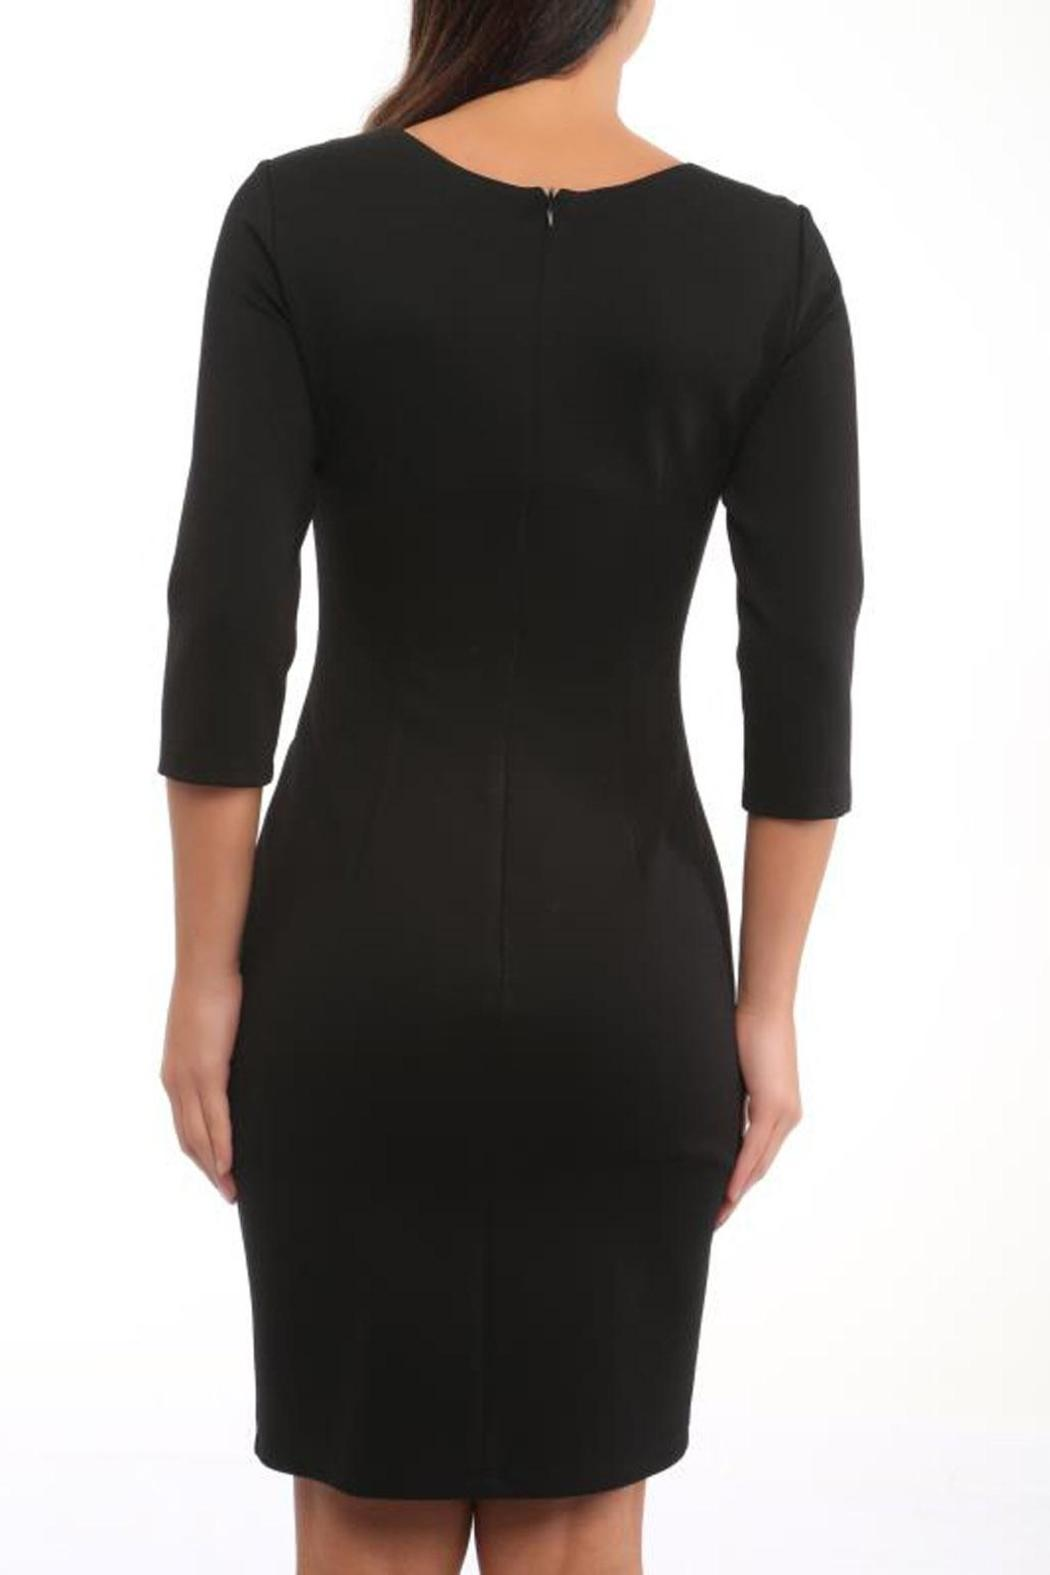 CALORE Fitted Black Dress - Front Full Image